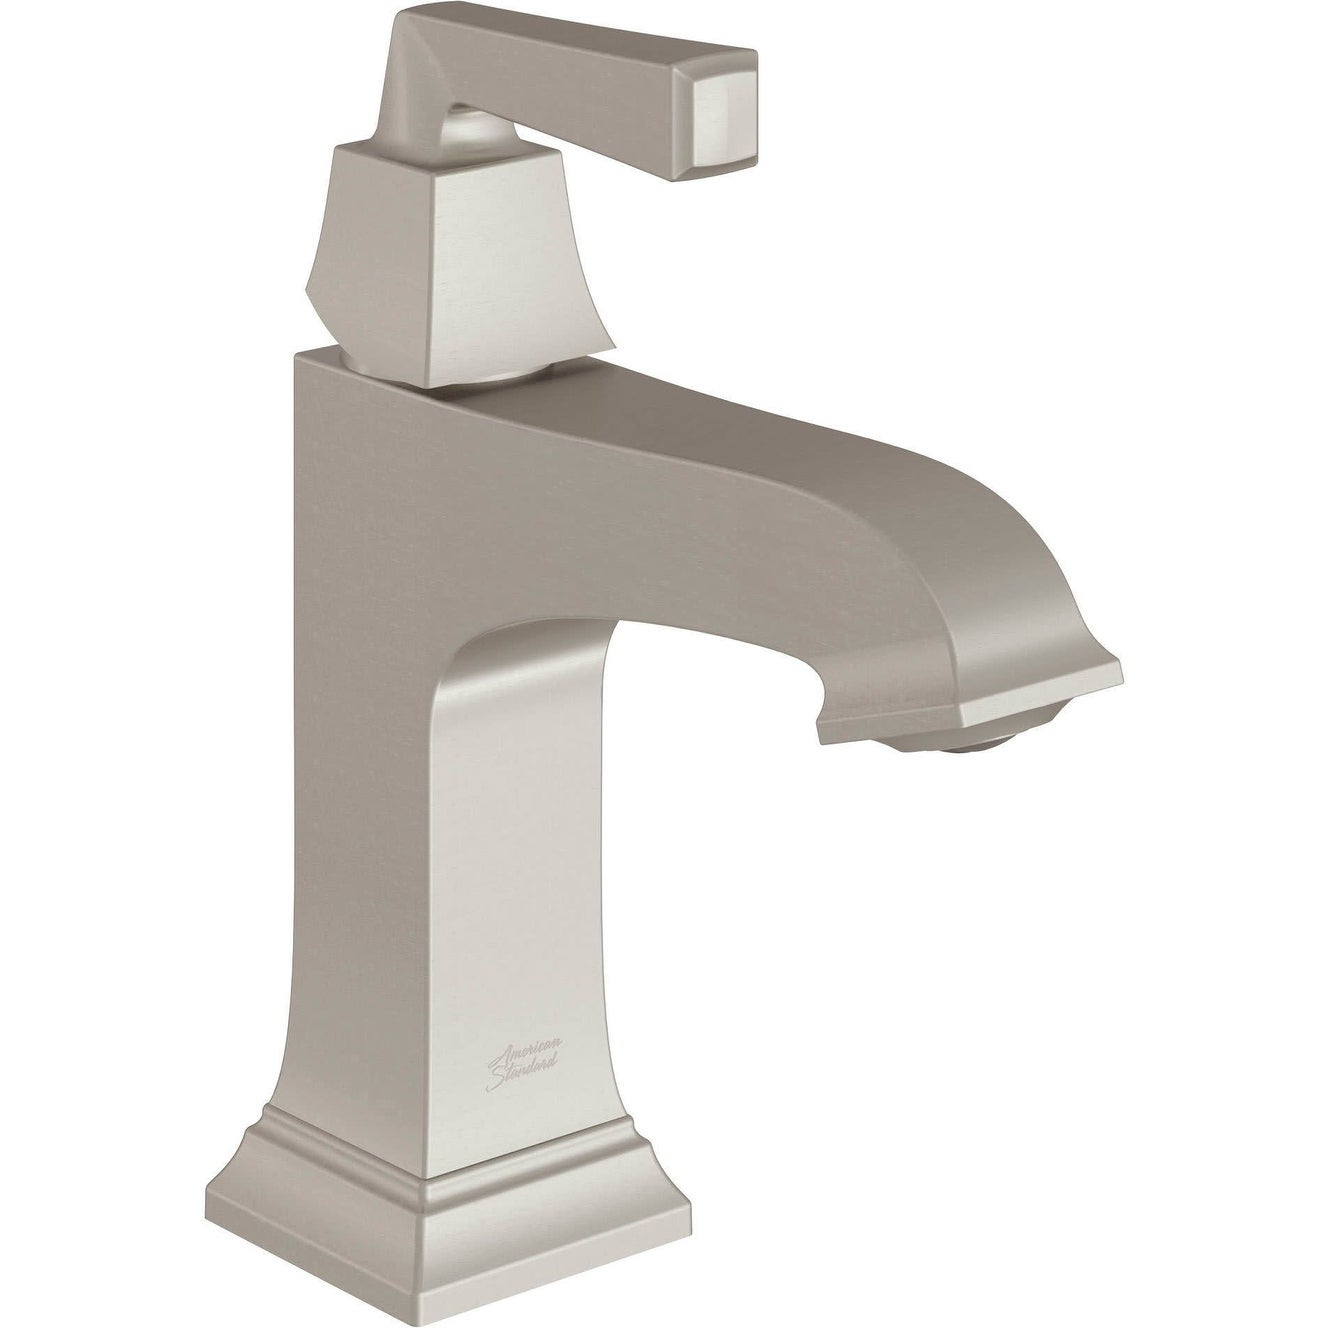 American Standard Bathroom Faucets >> American Standard 7455 107 Town Square S 1 2 Gpm Single Hole Bathroom Faucet With Pop Up Drain Assembly